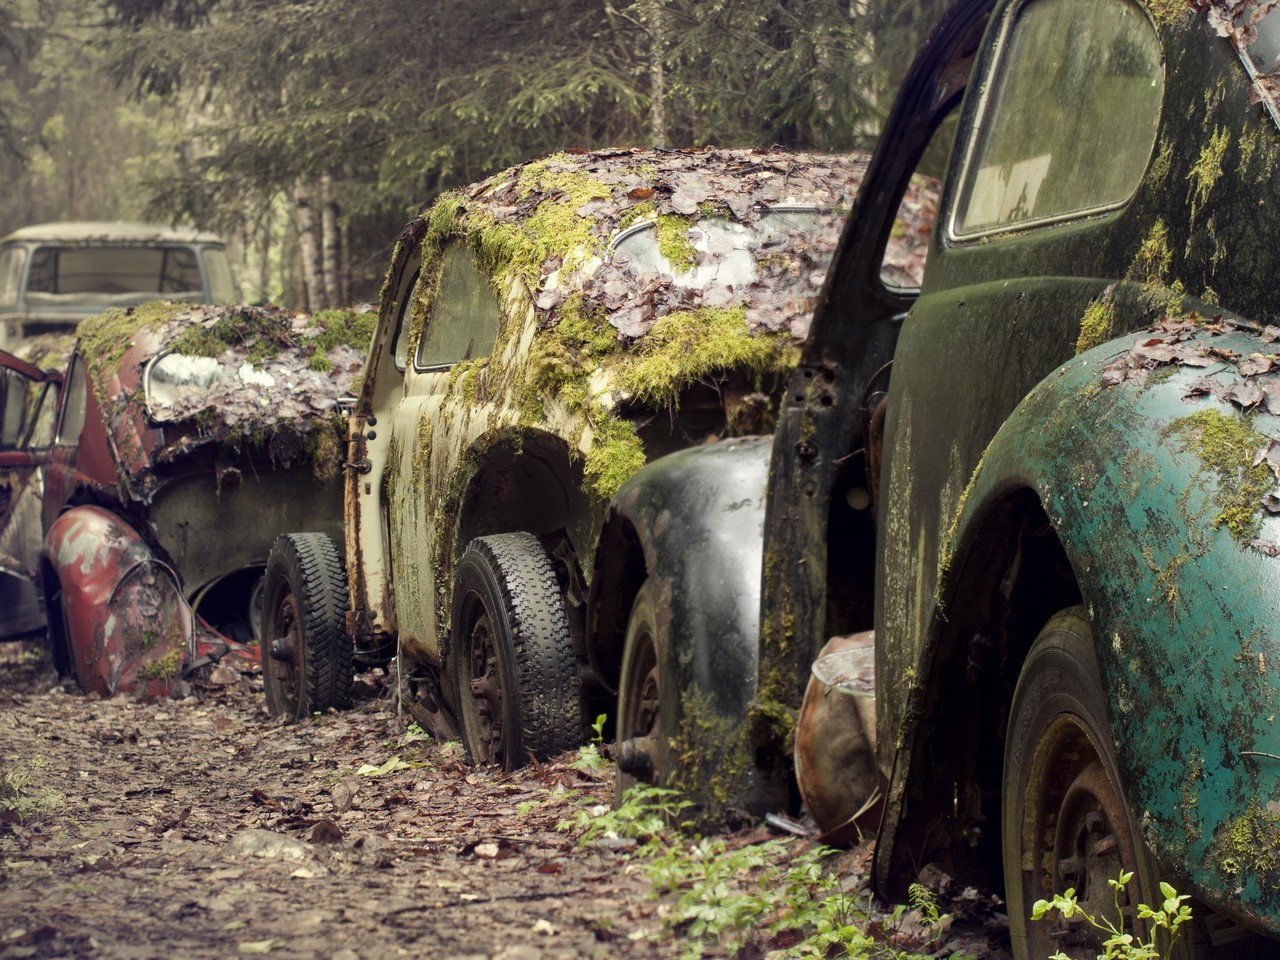 Fall Wallpaper Photos Microsoft Volkswagen Beetle Cars Moss Old Rusted Wallpaper